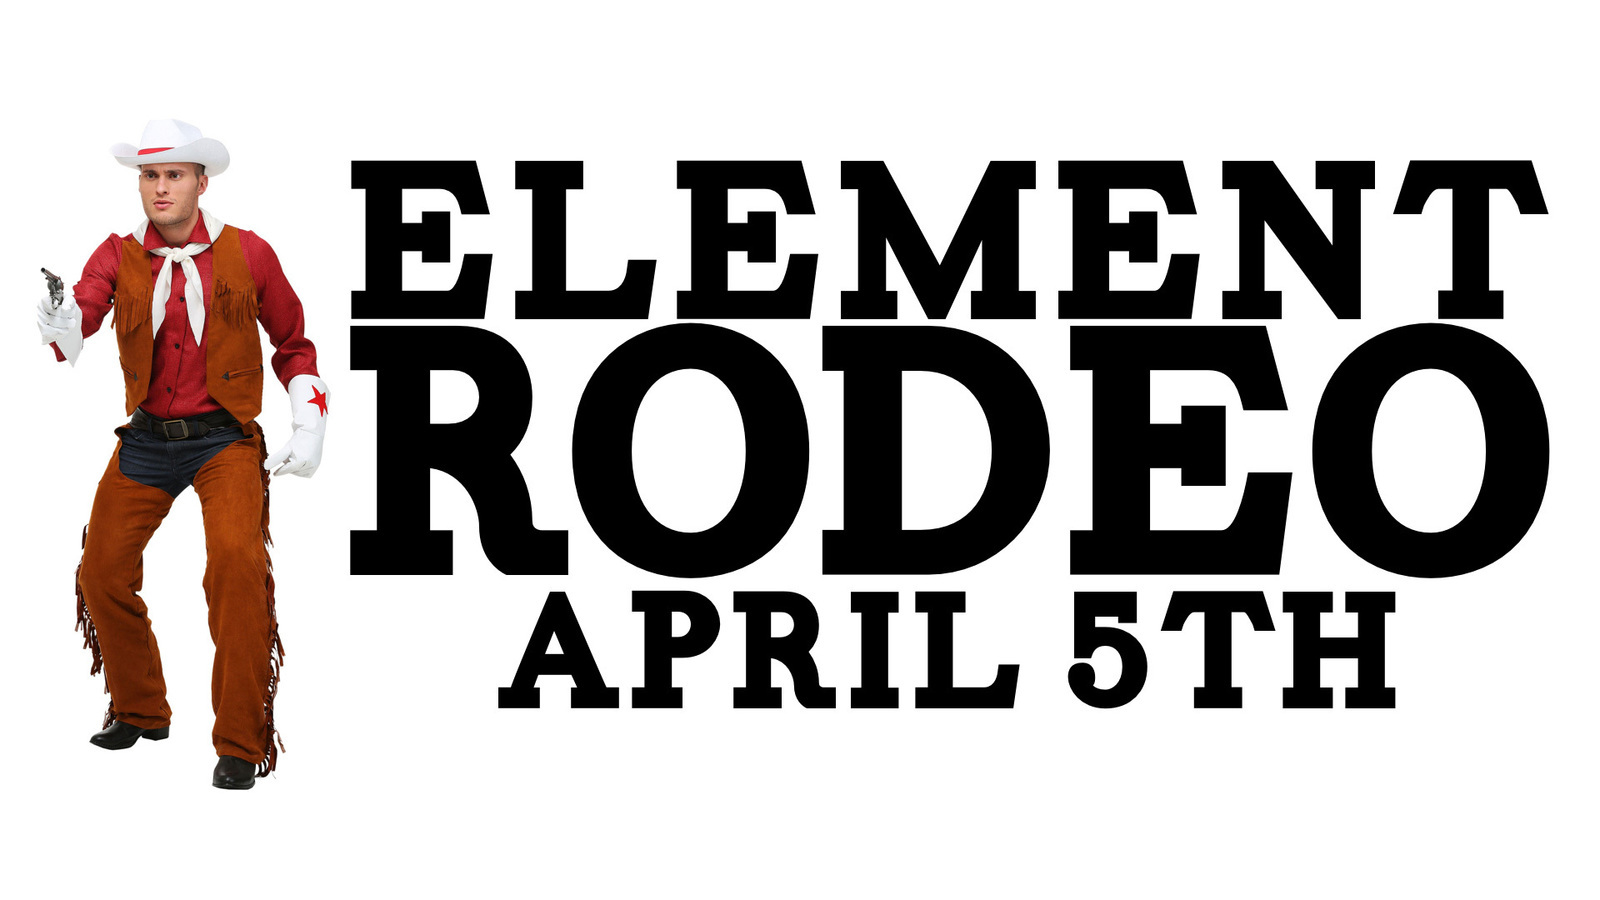 Element Rodeo